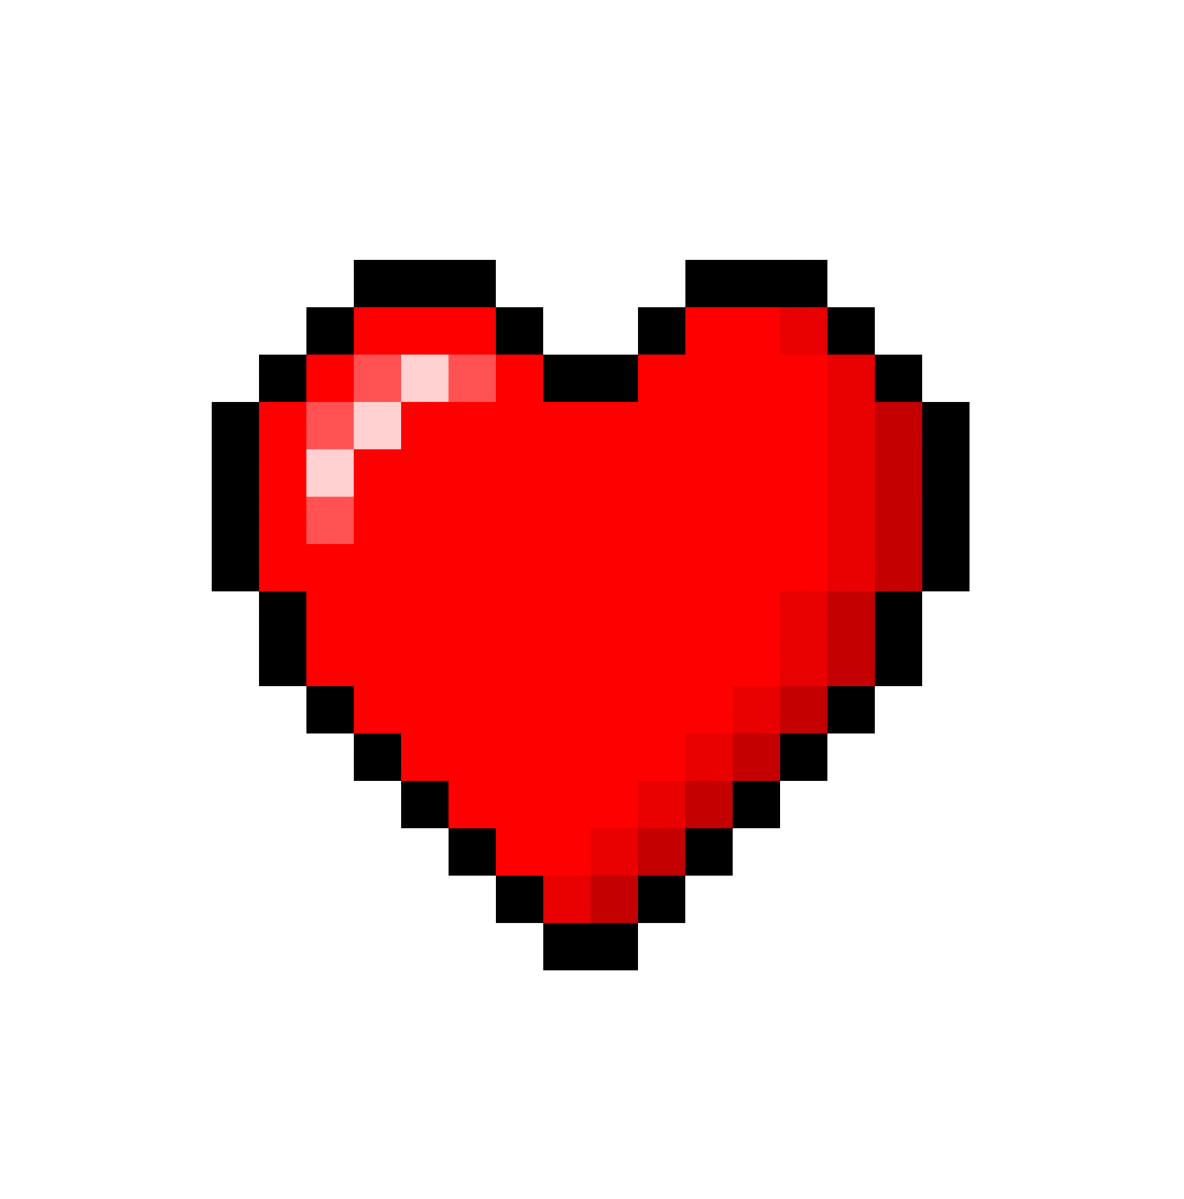 8 bit heart clipart svg freeuse library 8-bit color Clip art - pixel art 1184*1199 transprent Png Free ... svg freeuse library